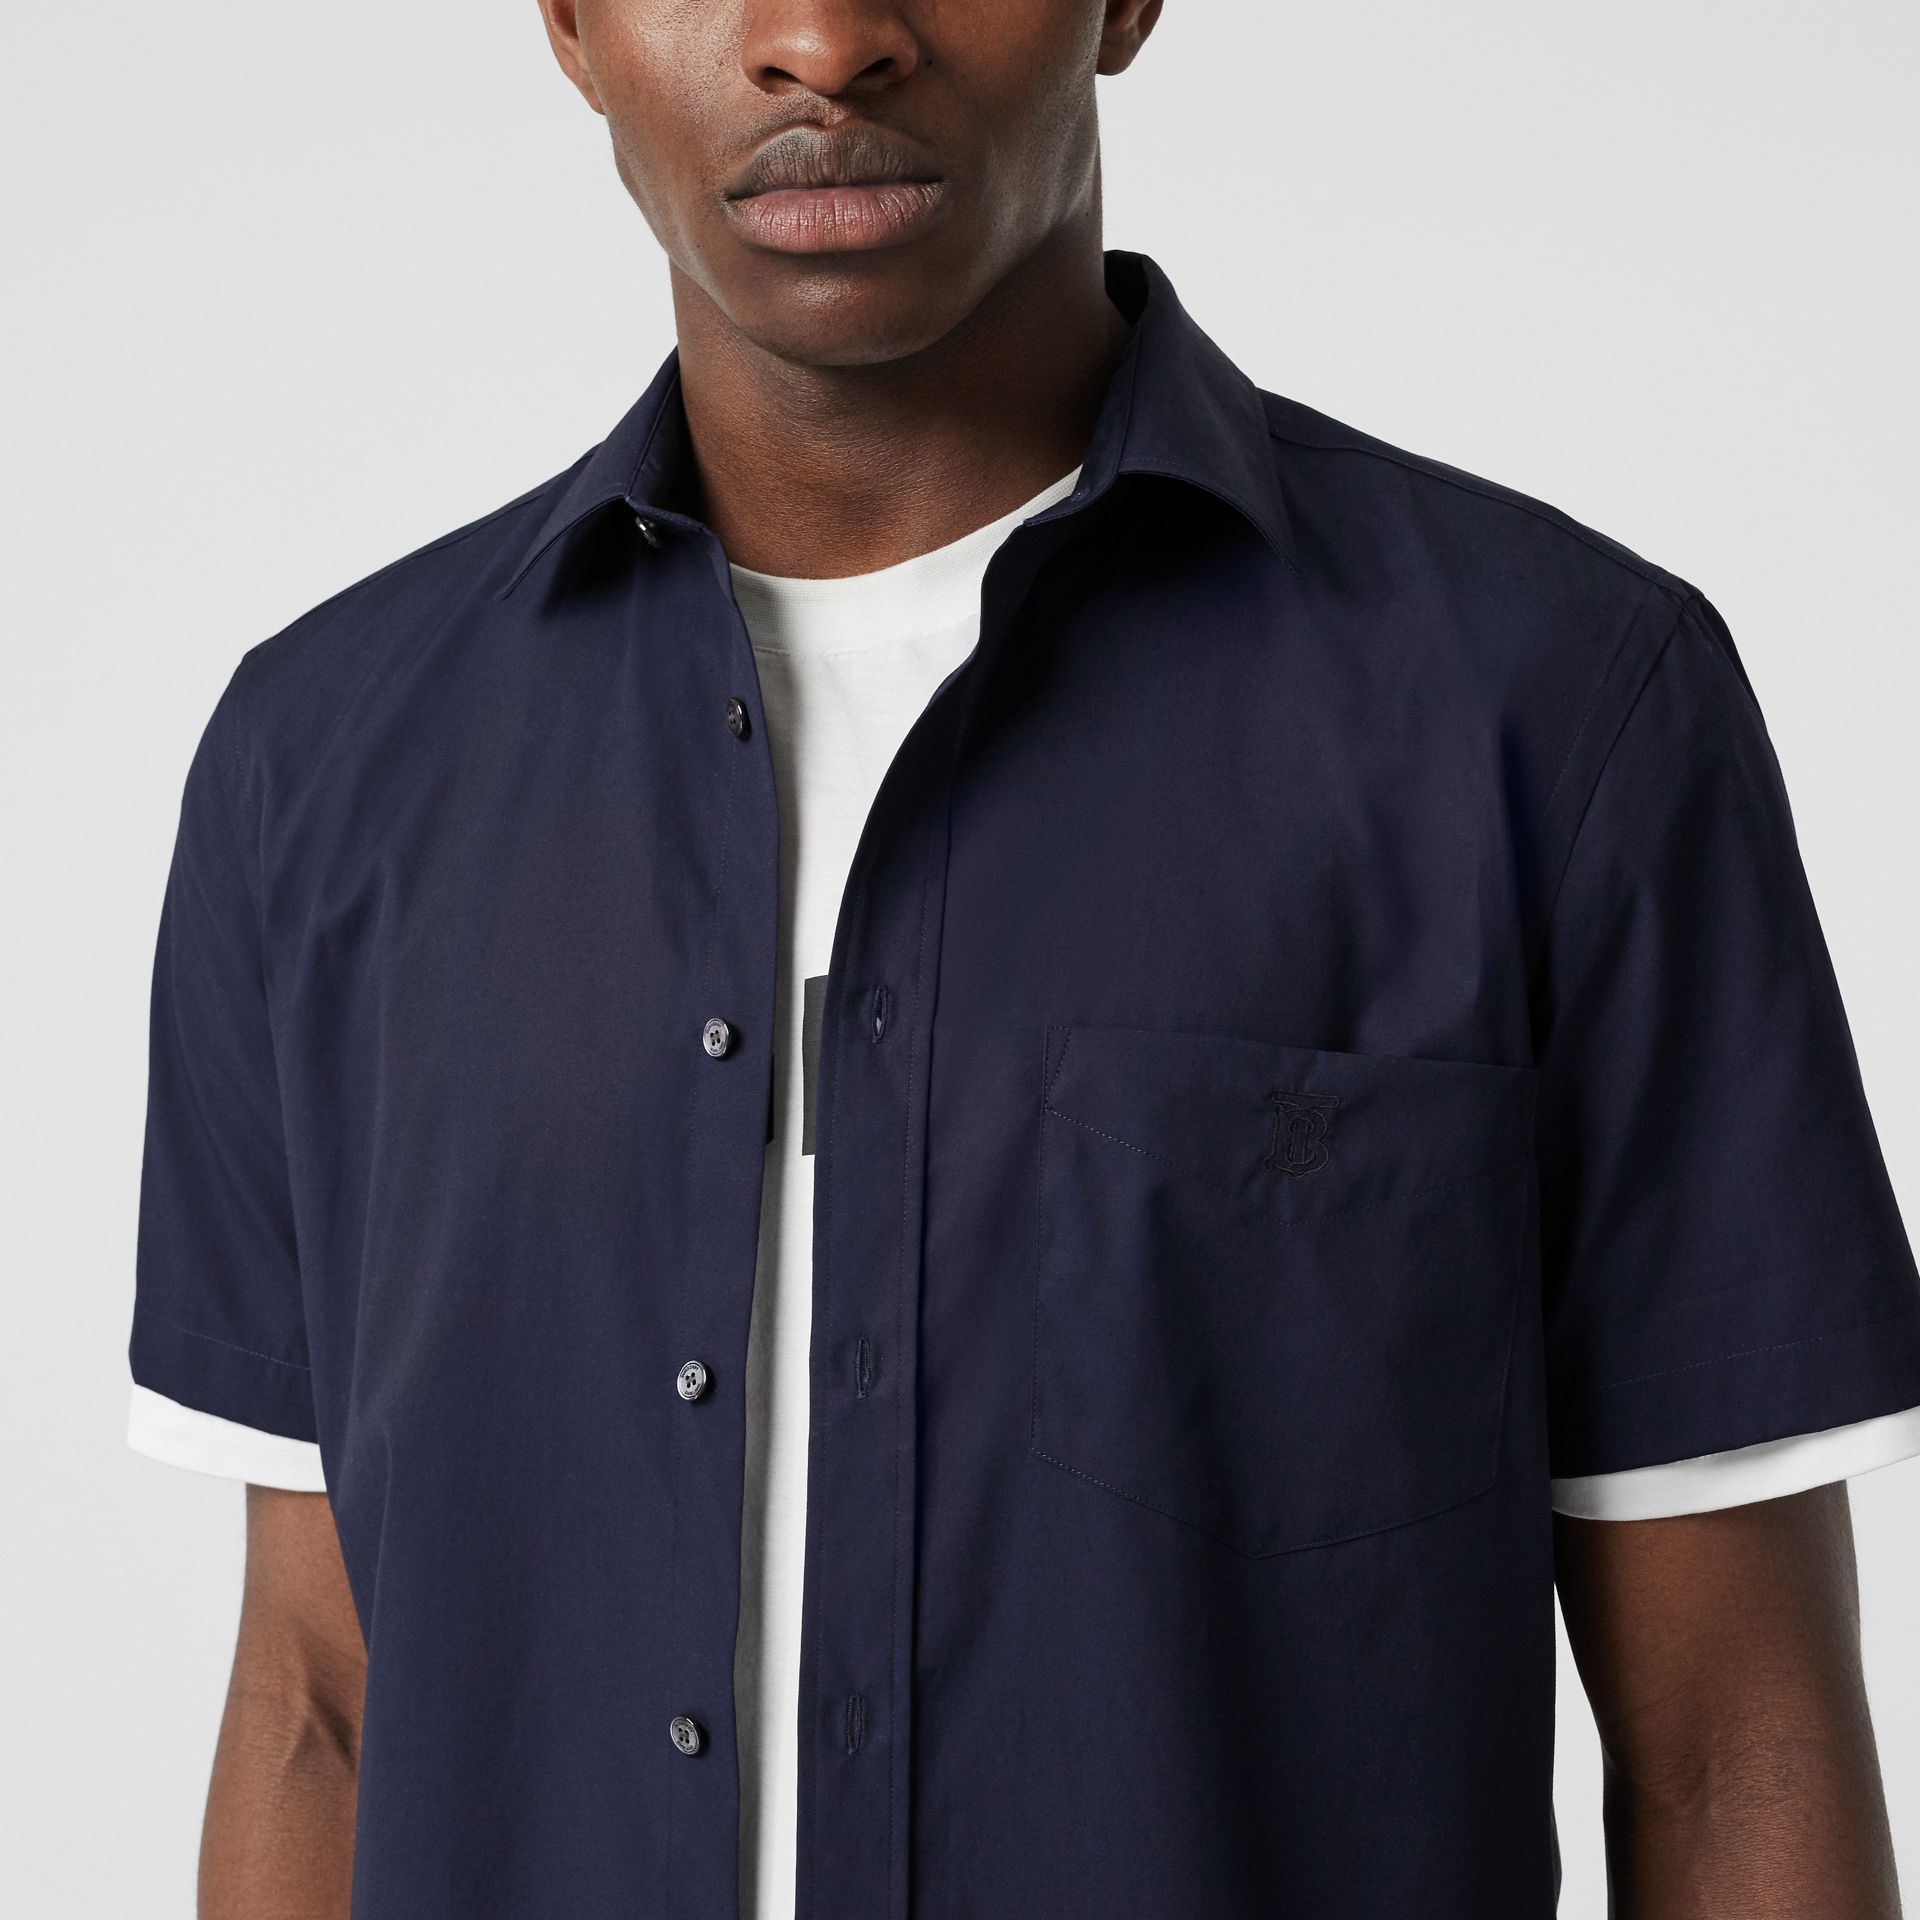 Short-sleeve Monogram Motif Stretch Cotton Shirt in Navy - Men | Burberry - gallery image 1